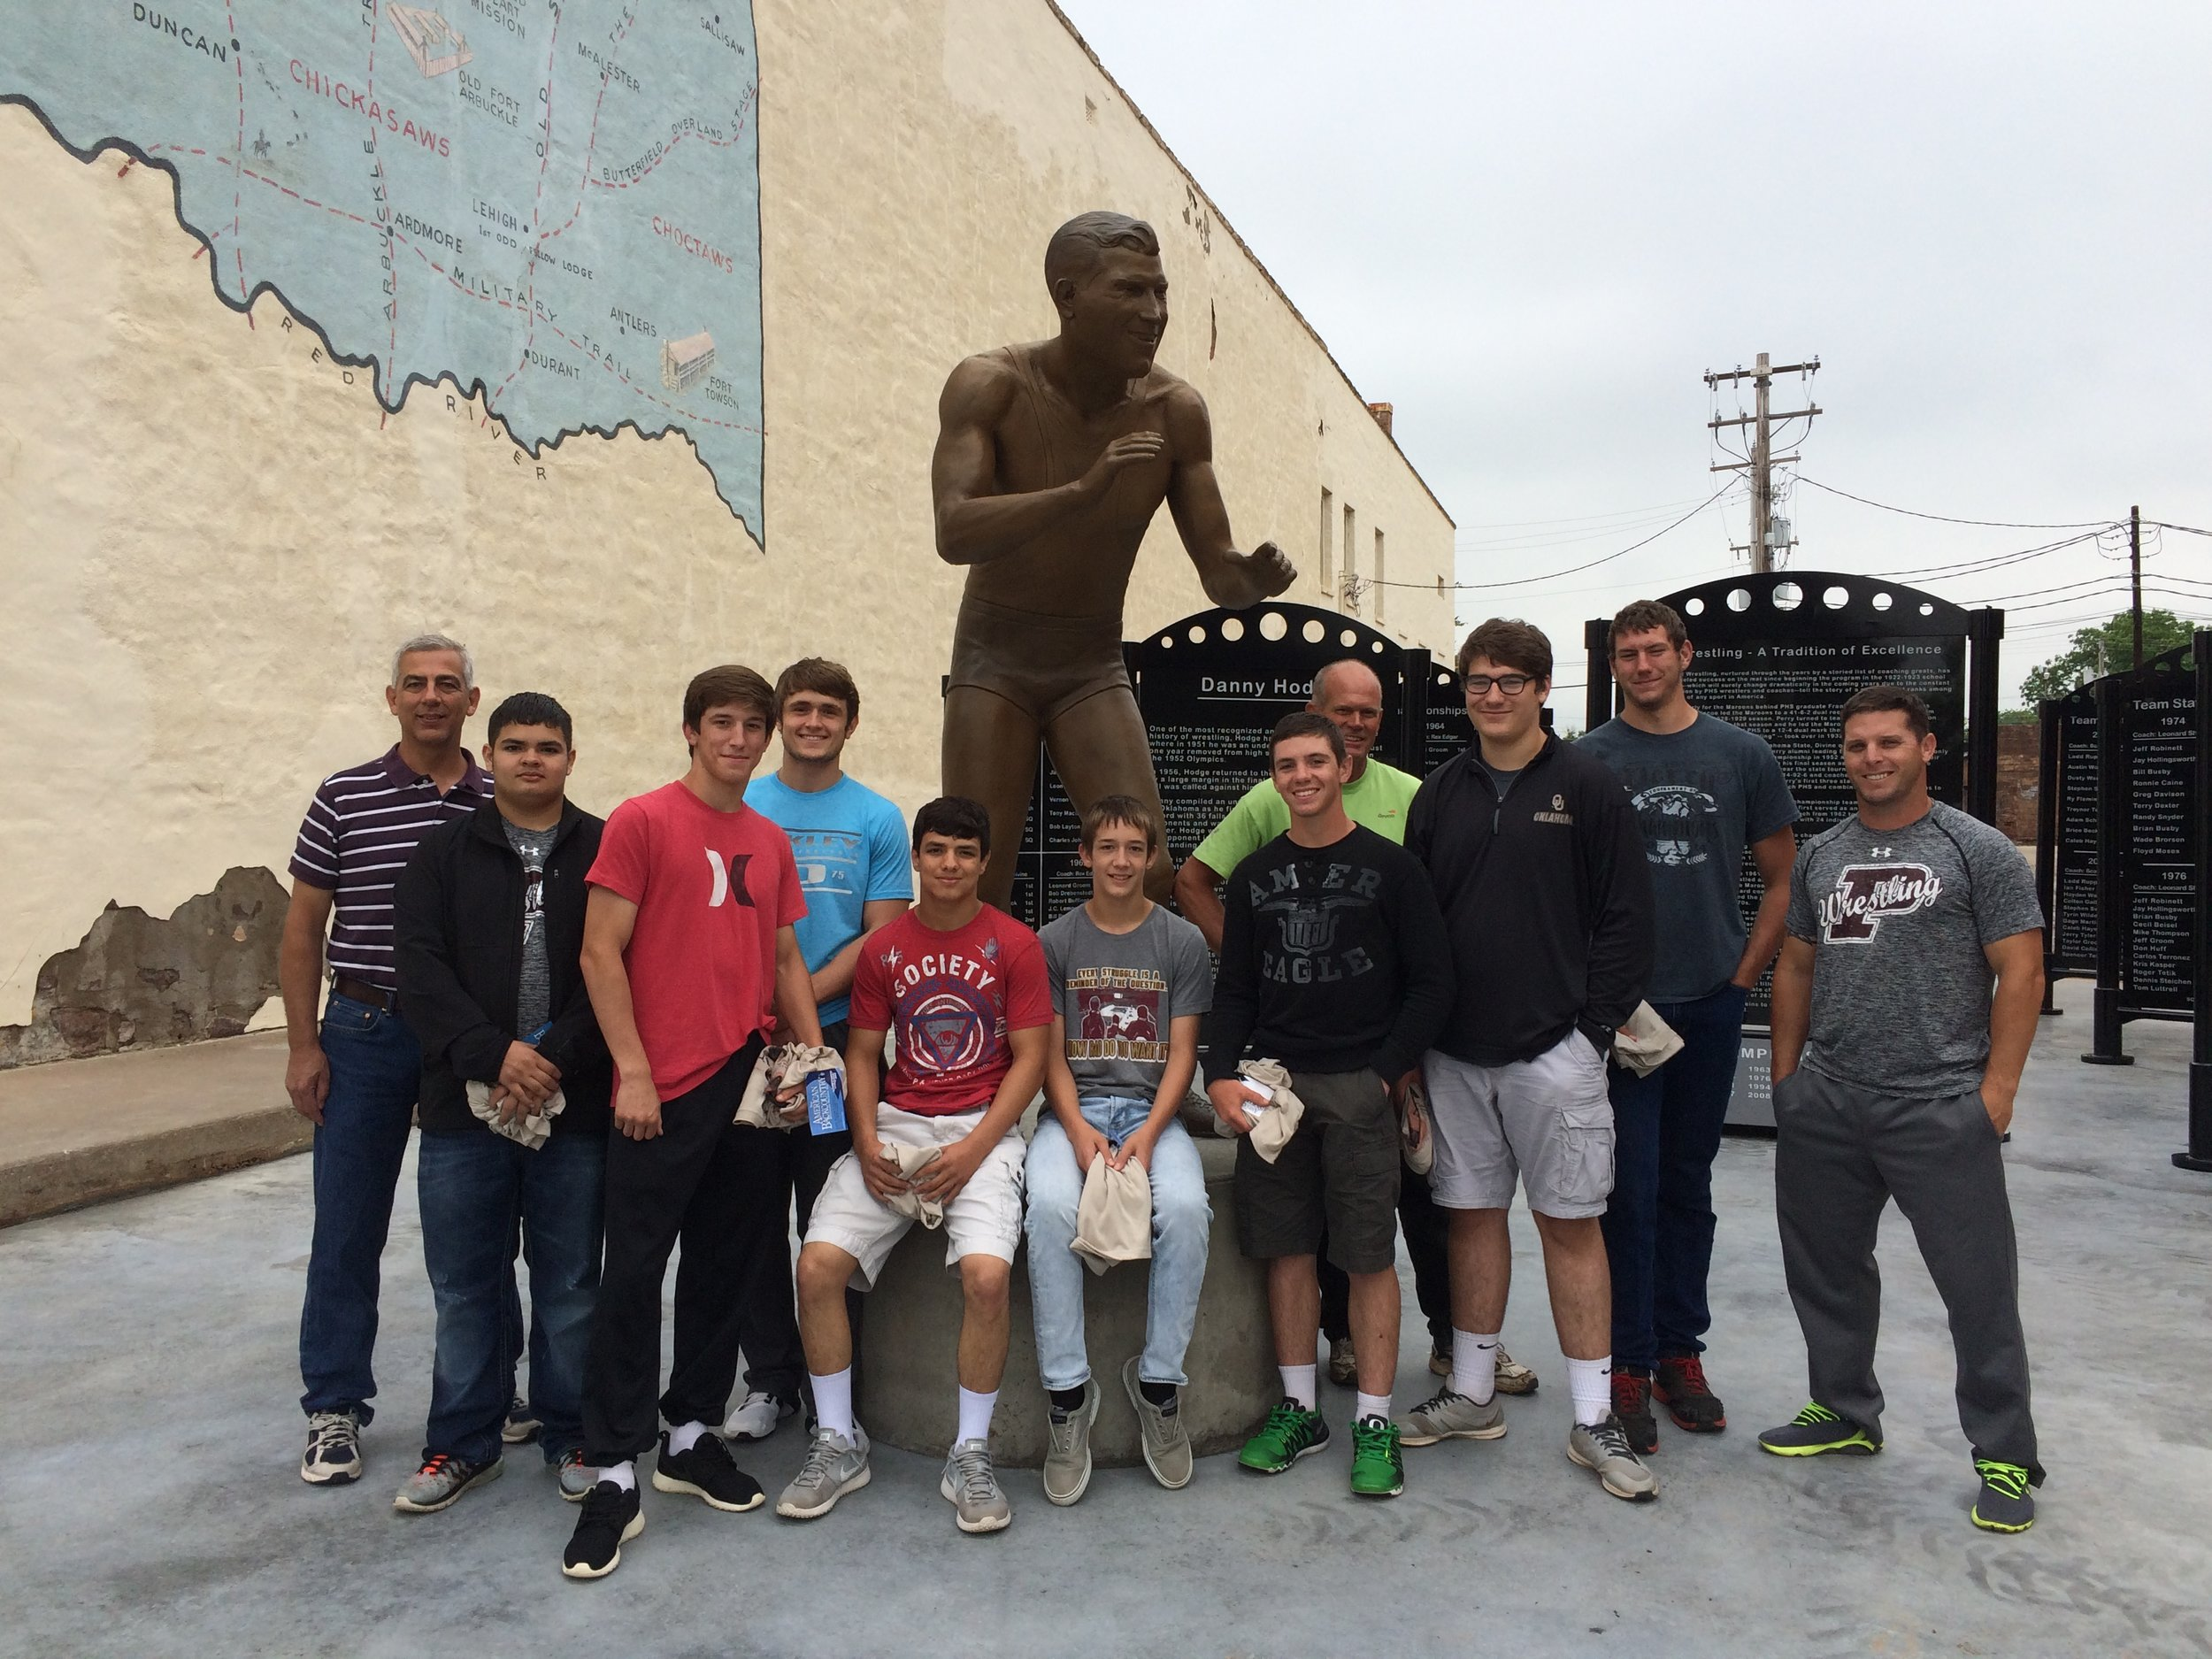 Ronnie Delk and the Perry Wrestlers visit the Perry Monument Park